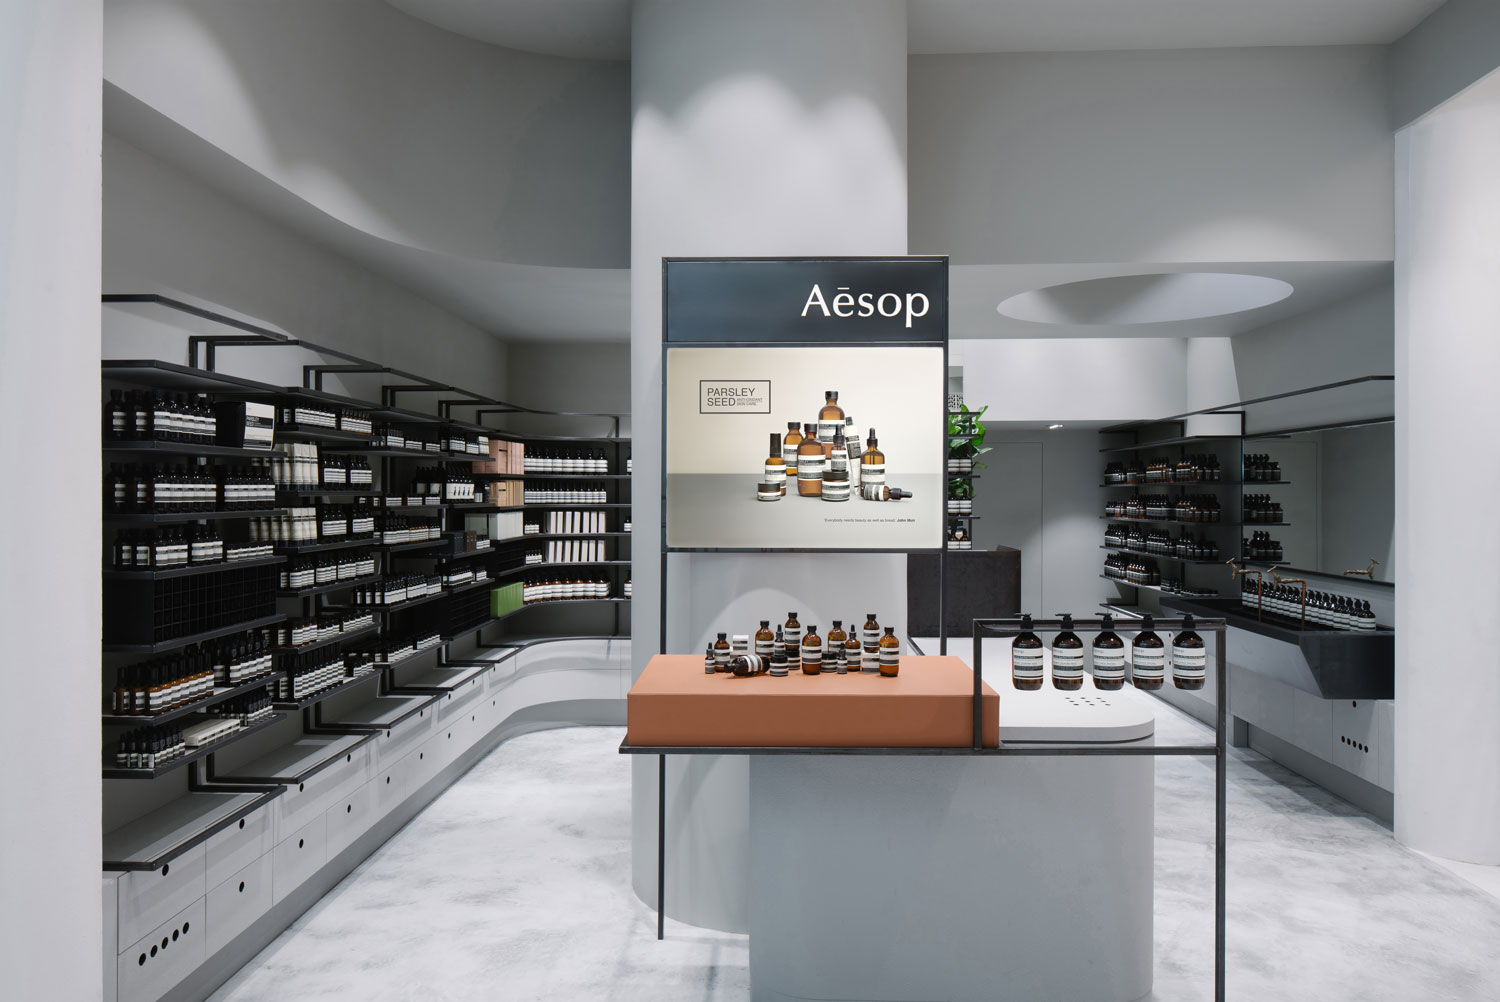 Russell-and-George-Aesop-Tangs-Renewel-Web-02.jpg